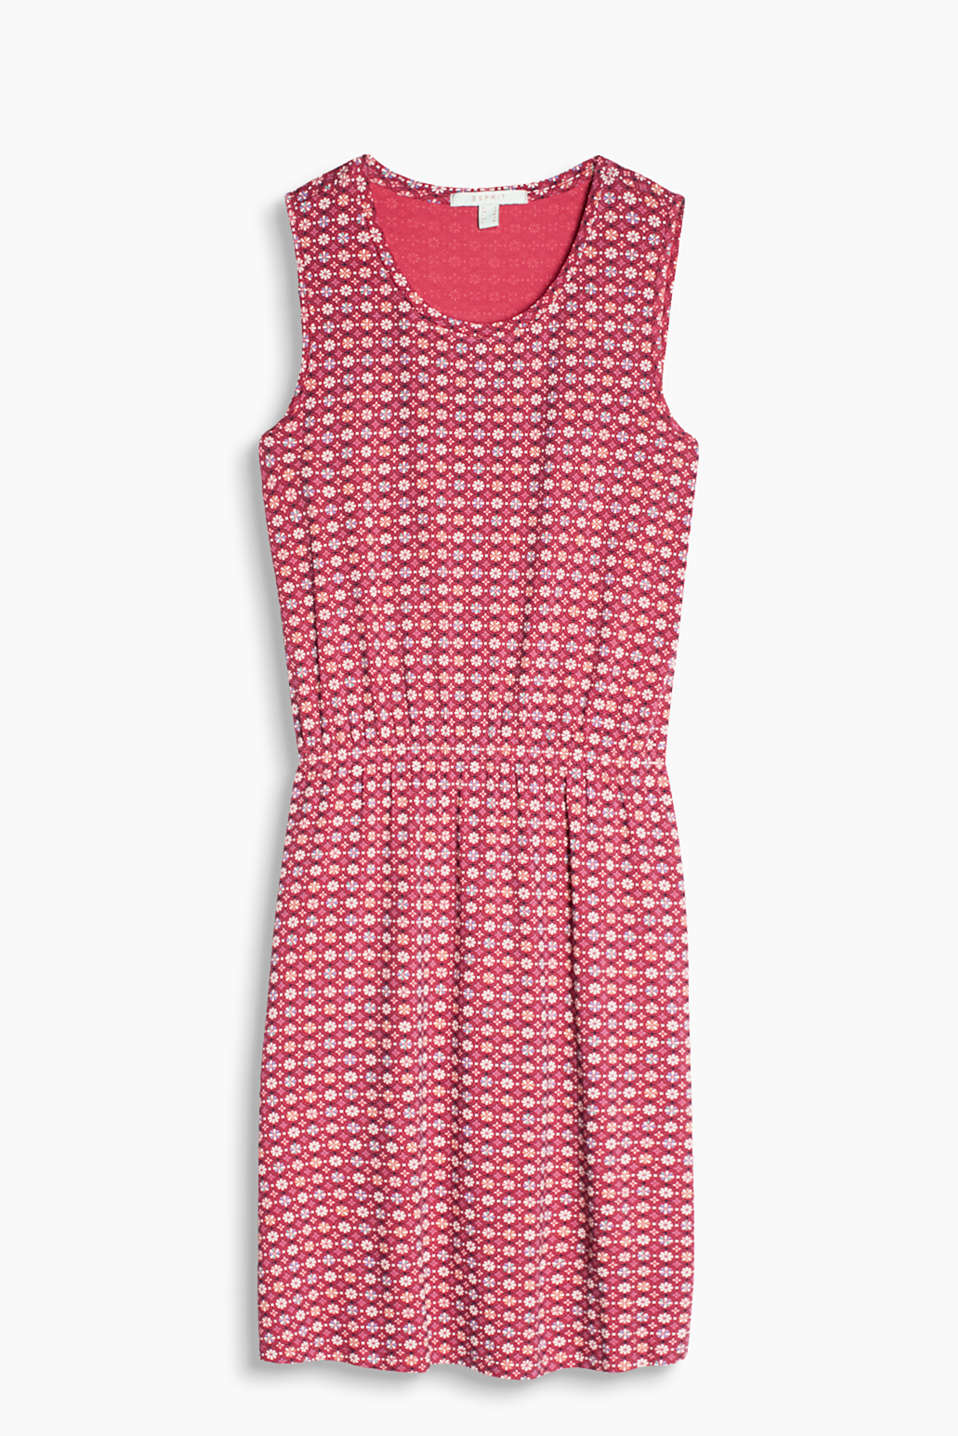 Sweet and simple flowing jersey stretch dress with a beautiful minimalist print